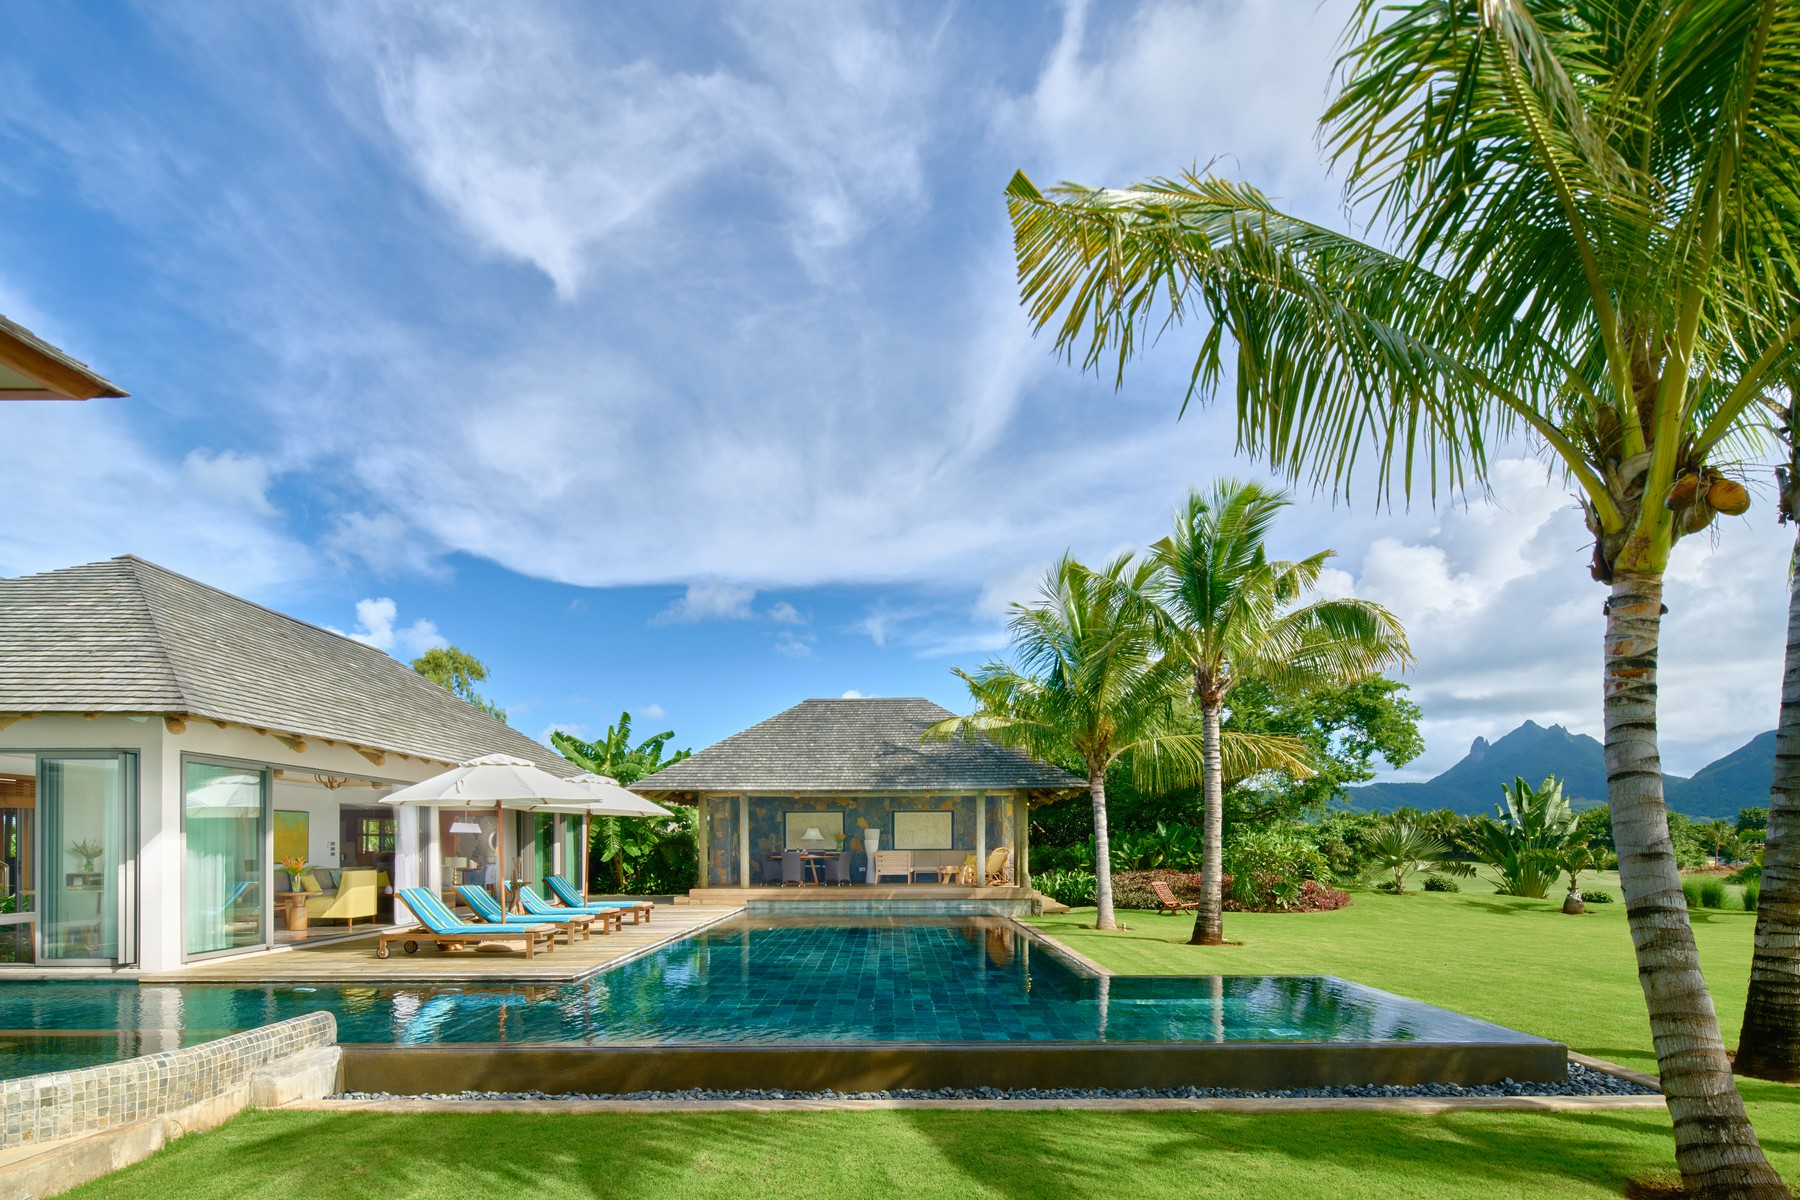 Single Family Home for Sale at Solaia Designer Golf estate, Anahita. Beau Champ, Flacq Mauritius